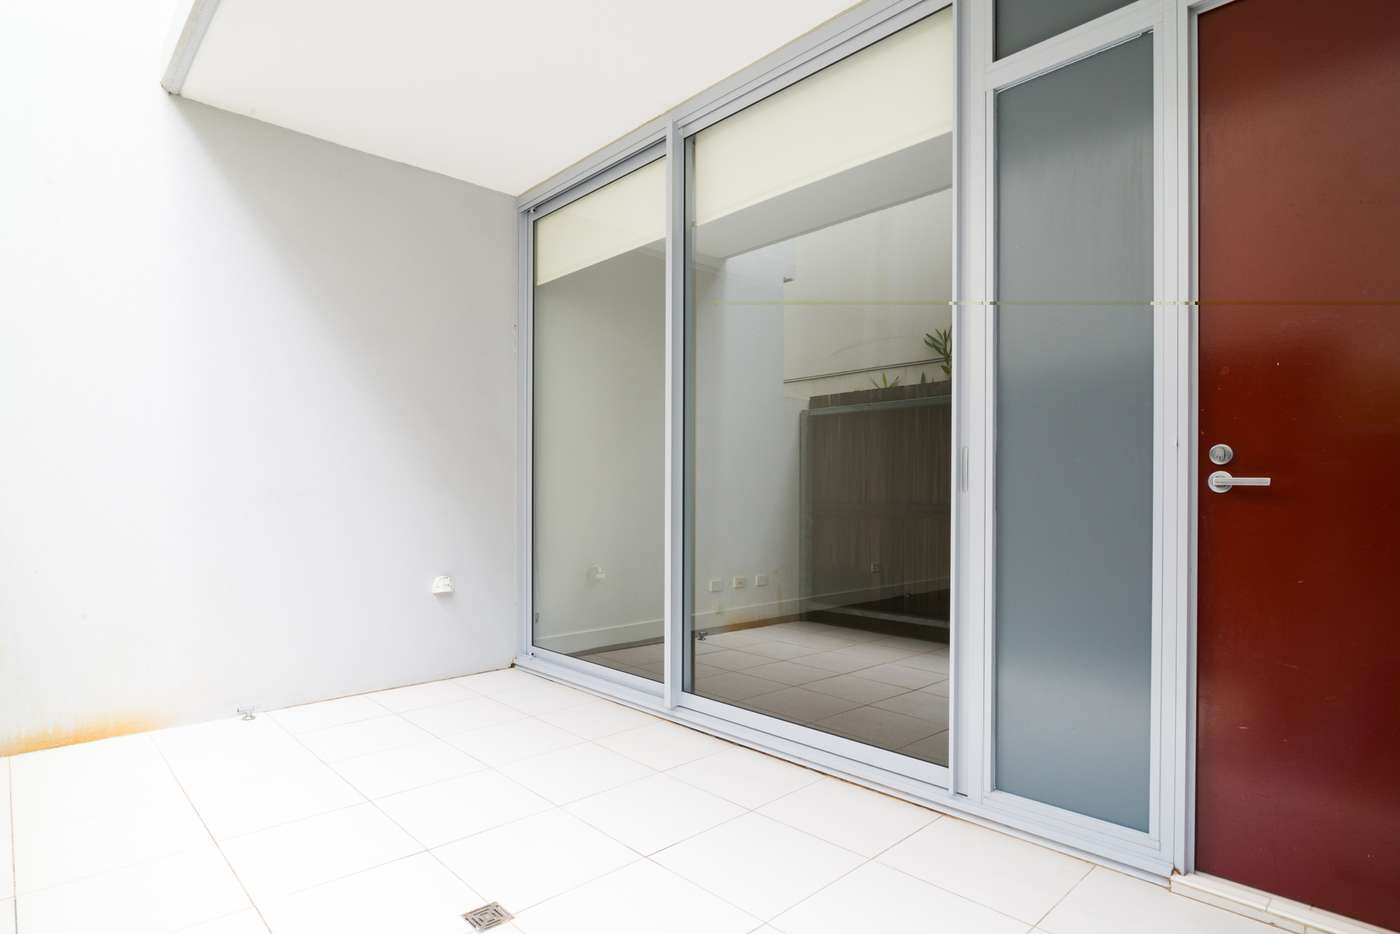 Seventh view of Homely apartment listing, 410/169-175 Phillip Street, Waterloo NSW 2017